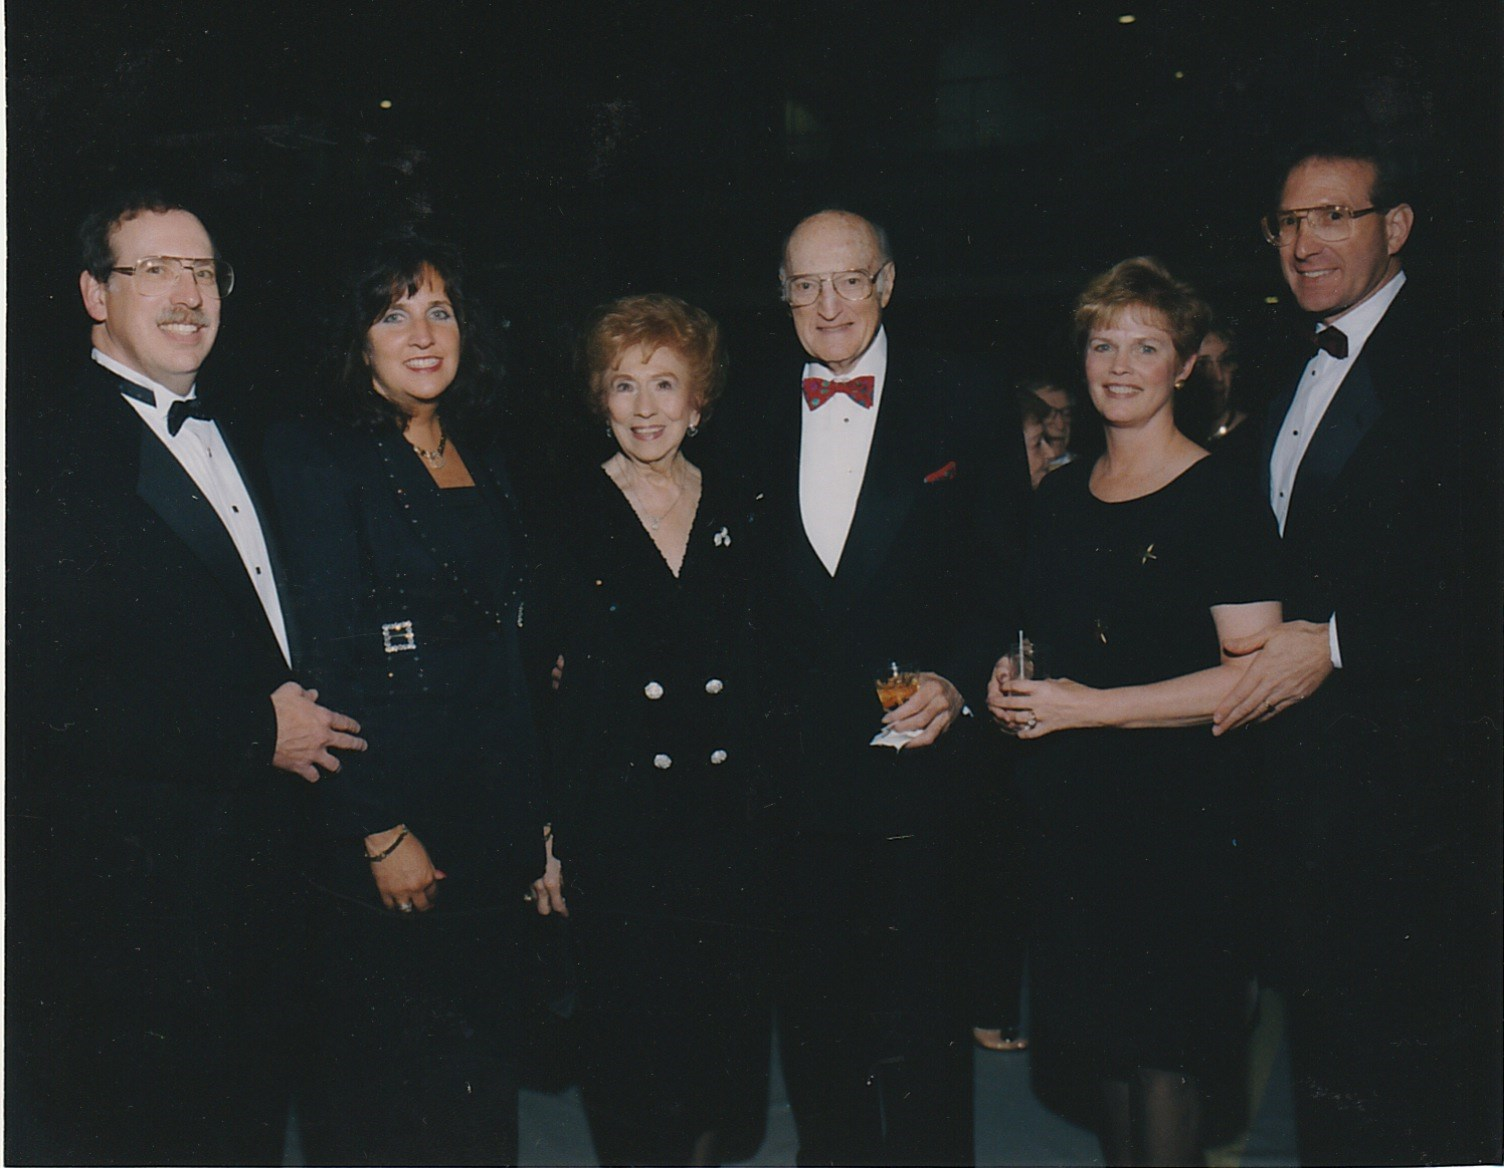 1997 Loss family at June 7th Anniversary Gala Stuart and Shelly, Natalie and Nat, Karen and Alan.